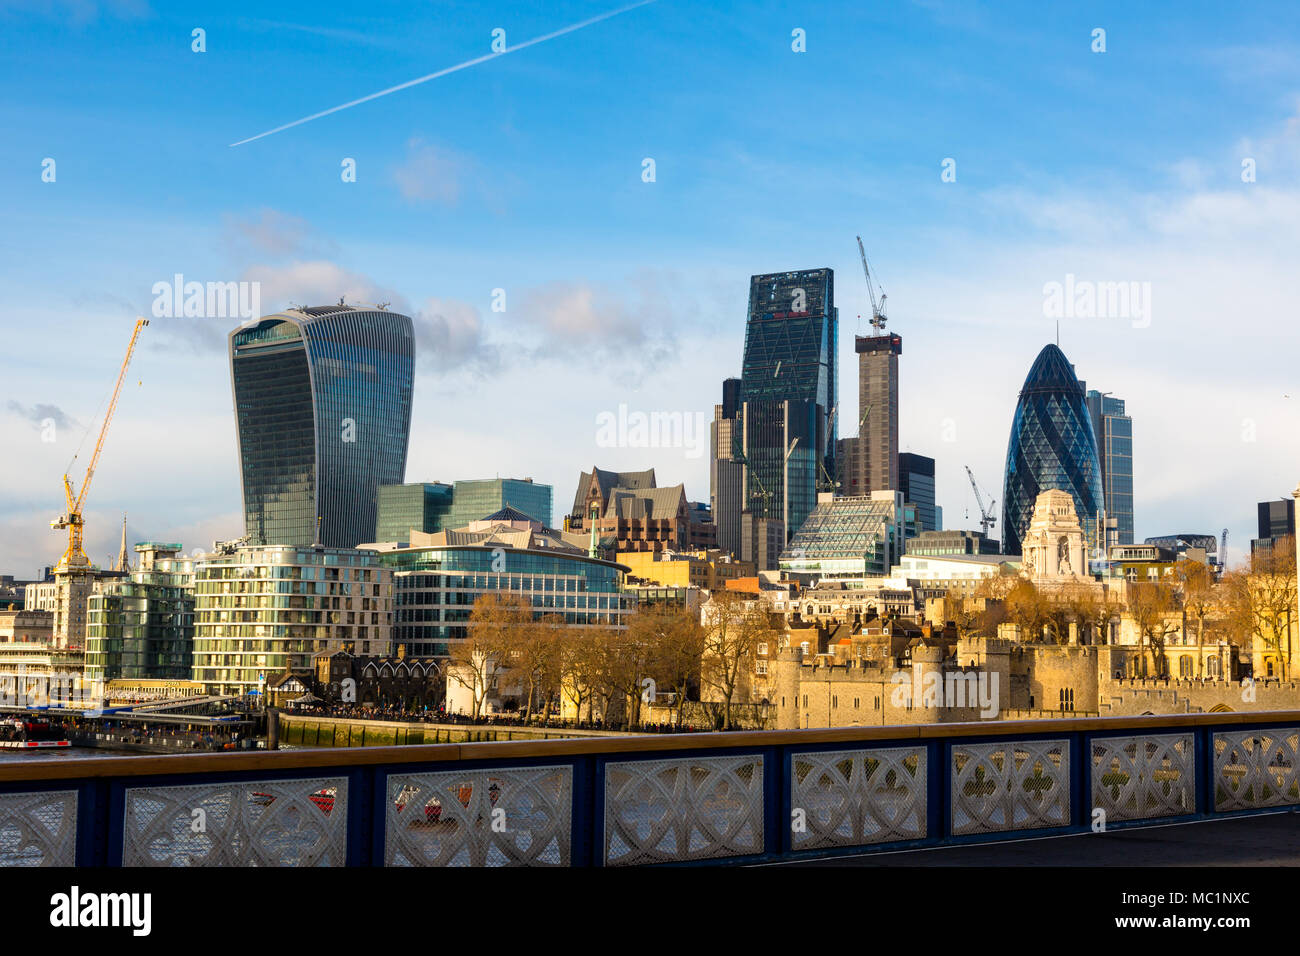 City of London, Financial Services Companies headquarters, The Leadenhall Building, The Gherkin view from south side over Tower Bridge and Tower Hill  - Stock Image